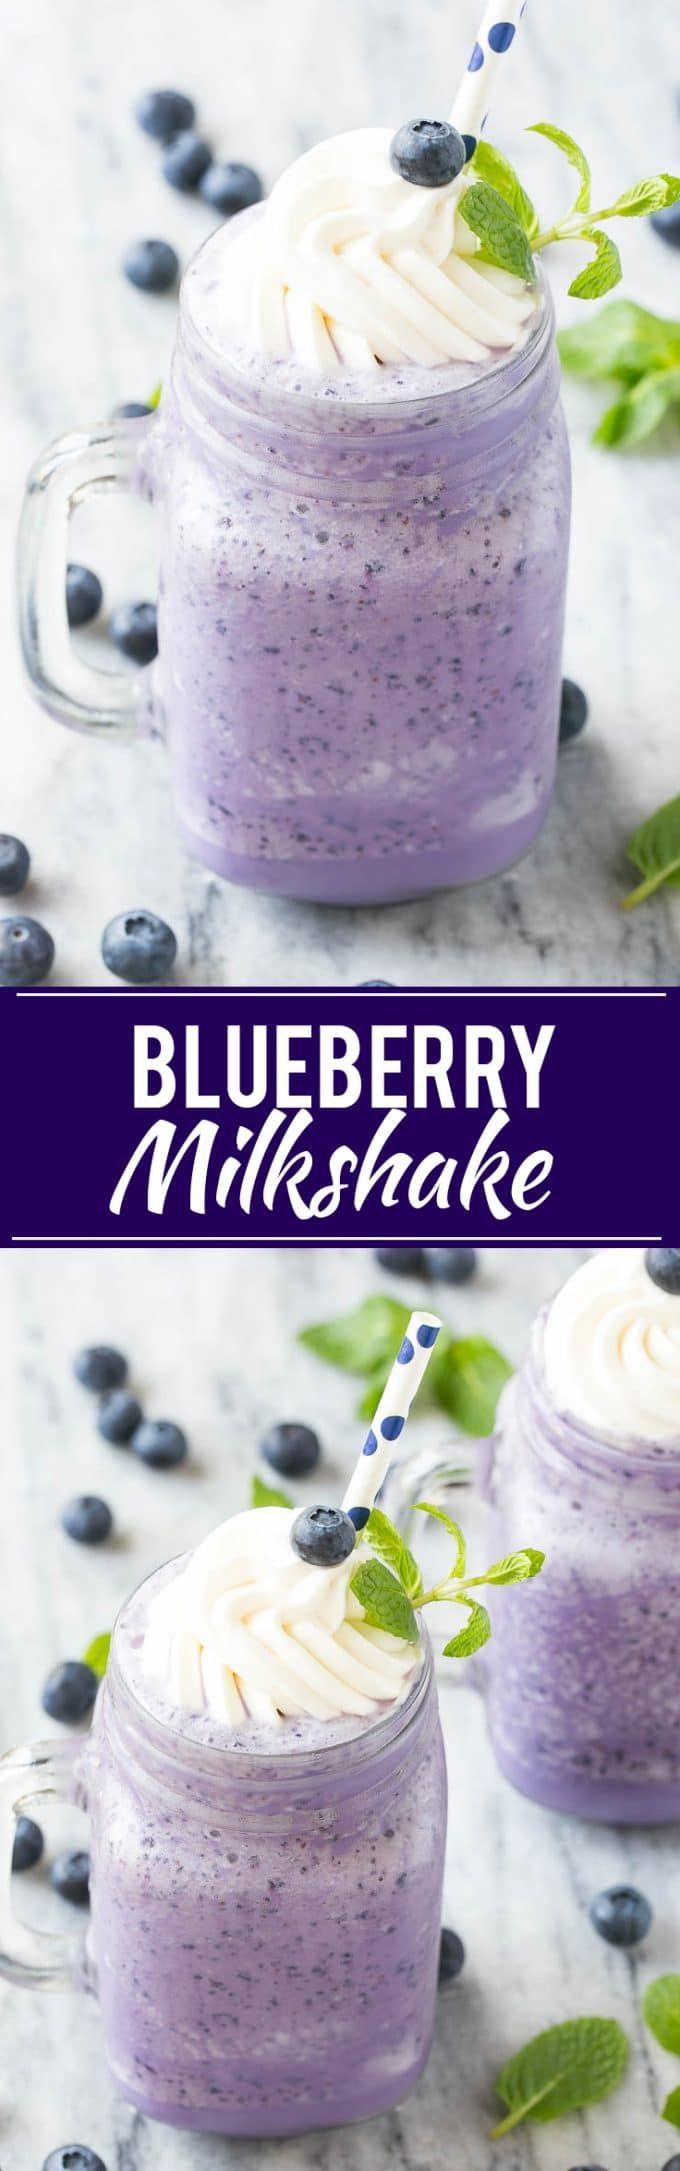 This recipe for a blueberry milkshake is a cool treat that's on the lighter side - this milkshake has 70% less calories than the original version!